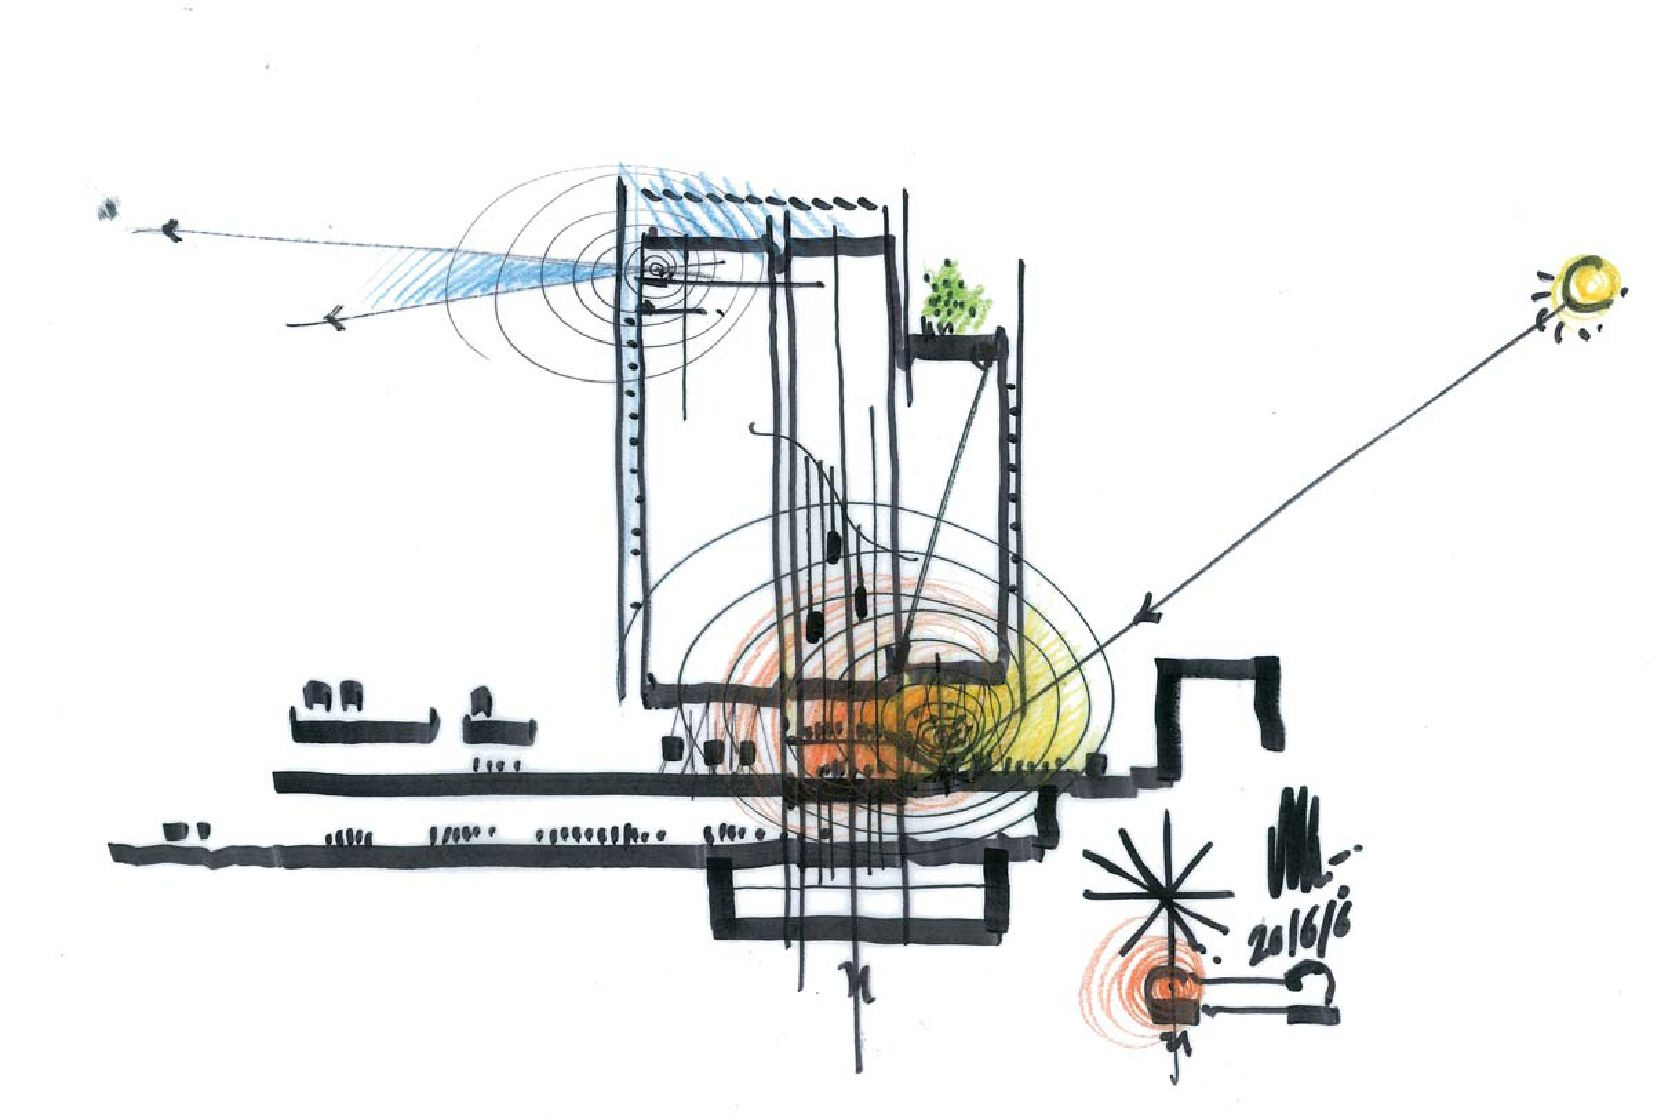 Renzo piano architectural presentations drawings models renzo piano pooptronica